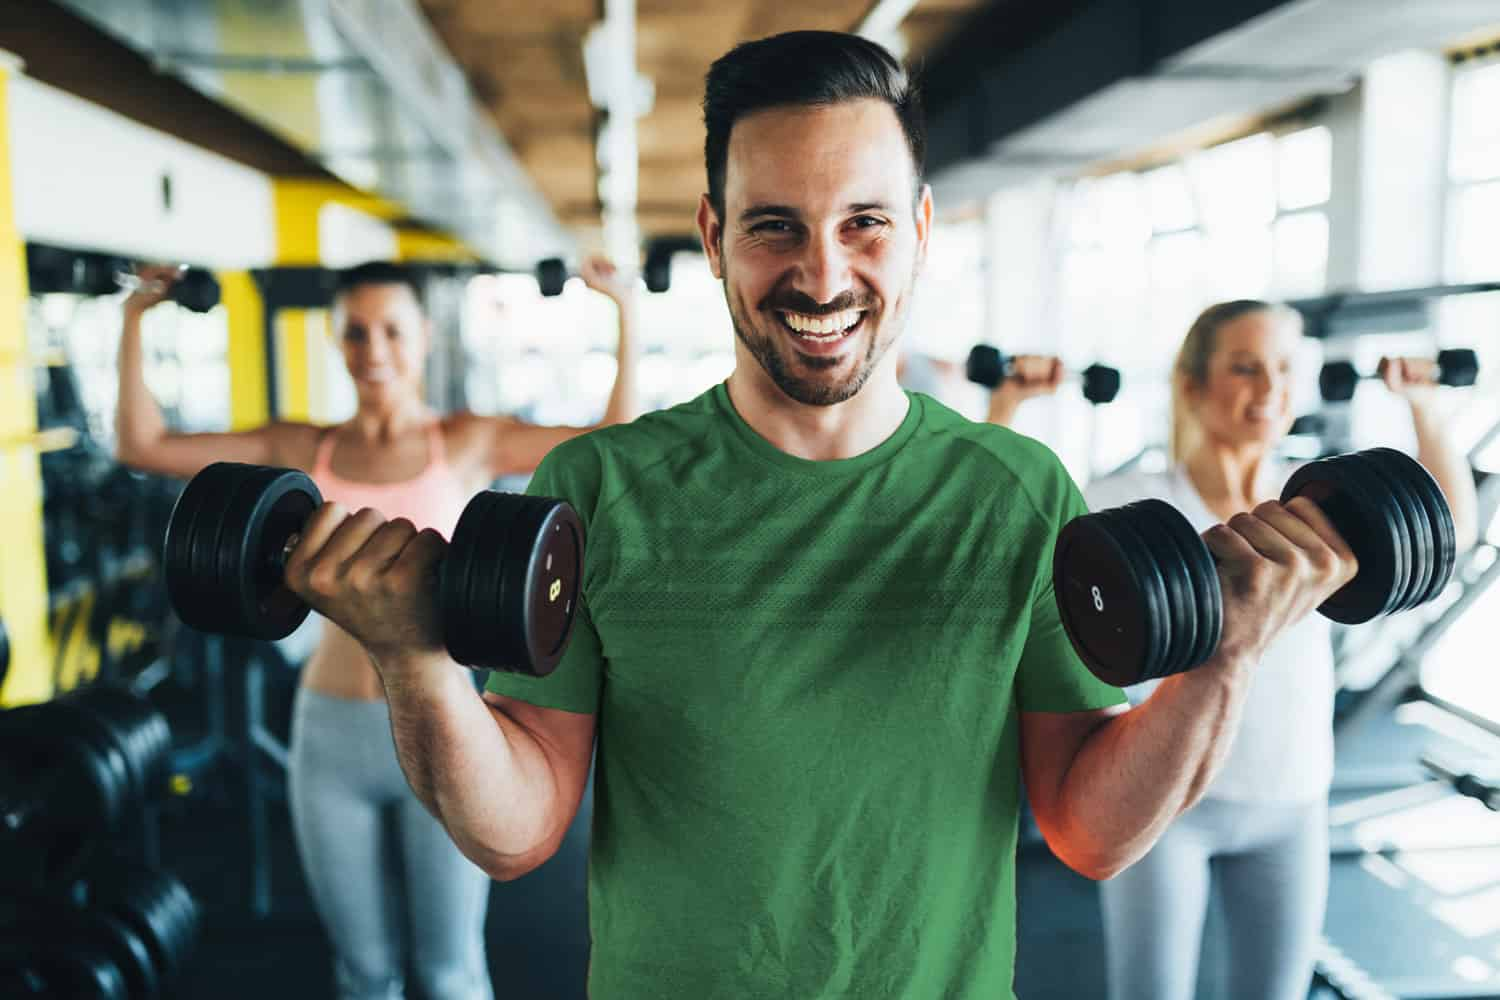 gym guy lifting weights - digital marketing for gyms